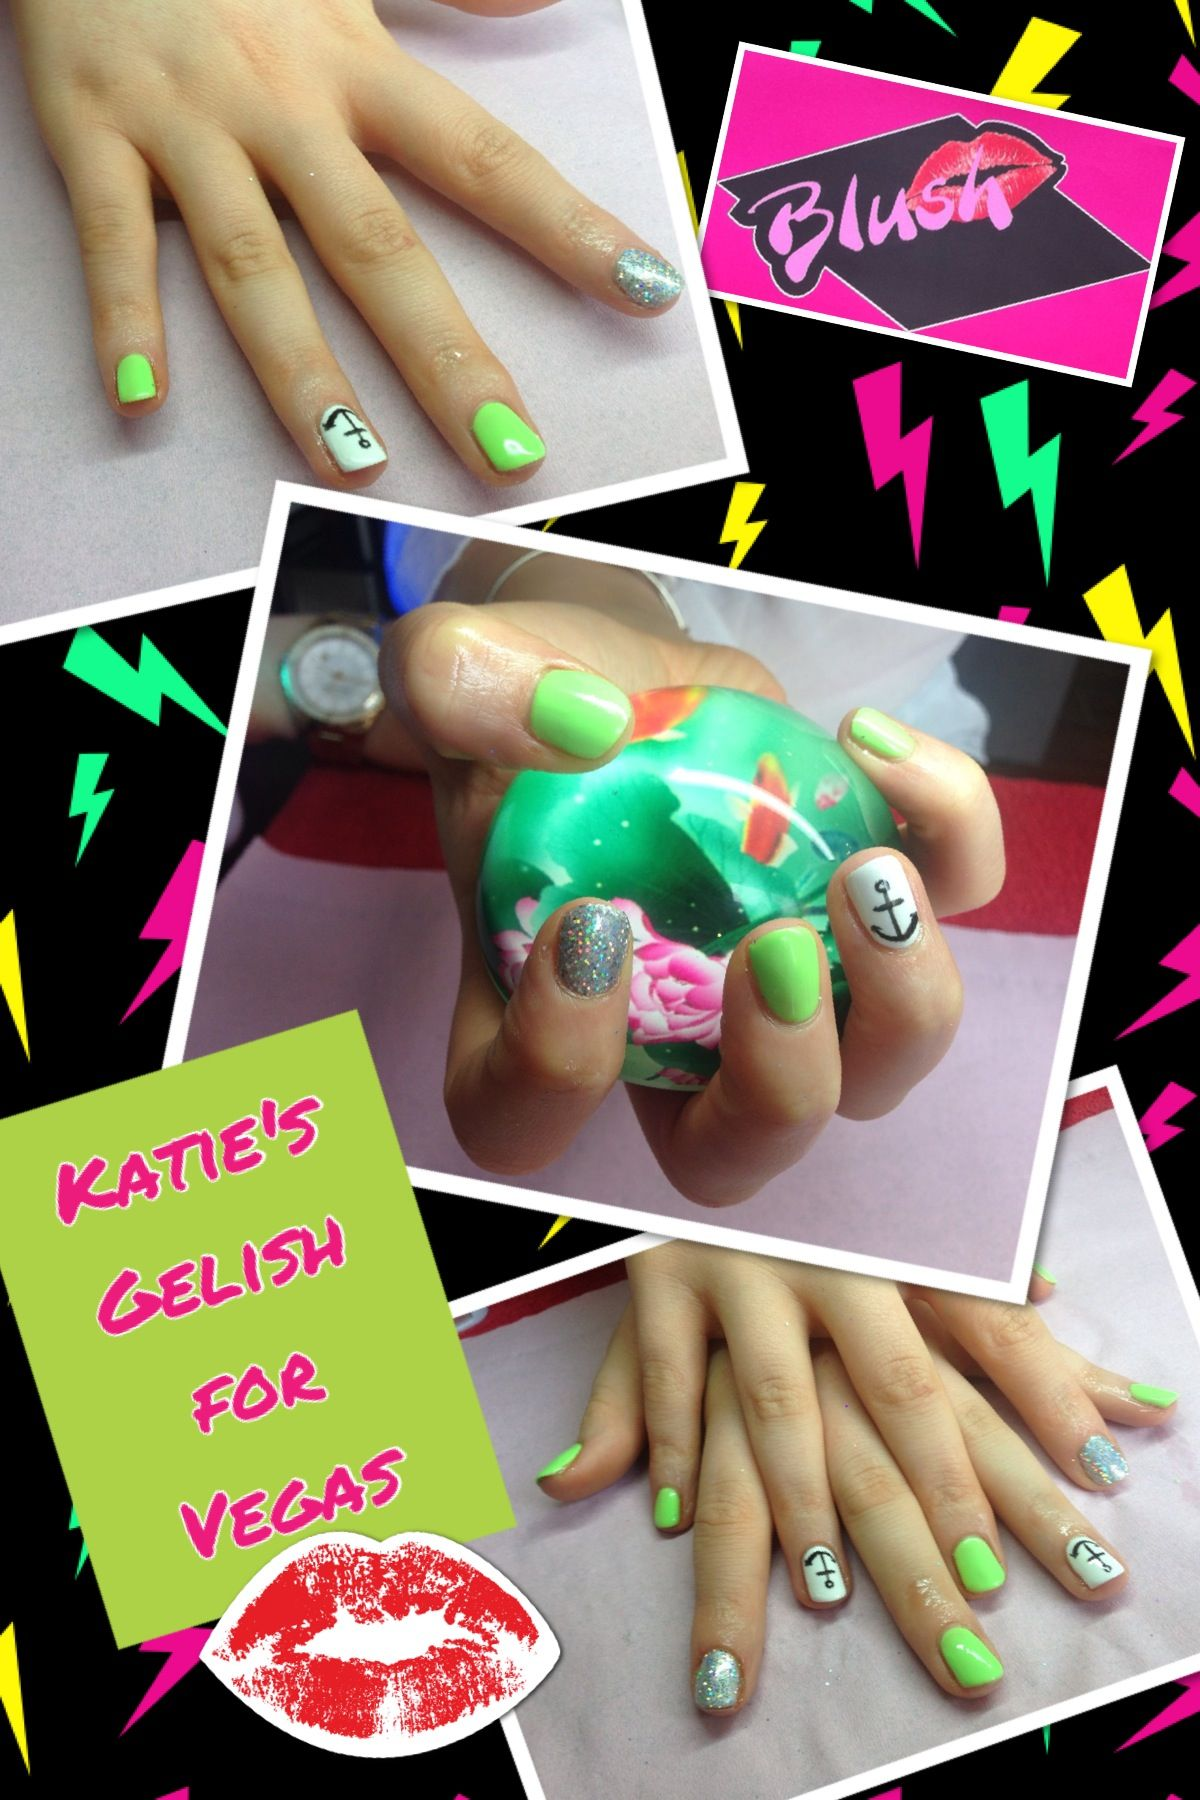 Katies Neon Green Gelish With A Sparkle And An Anchor Design Nail